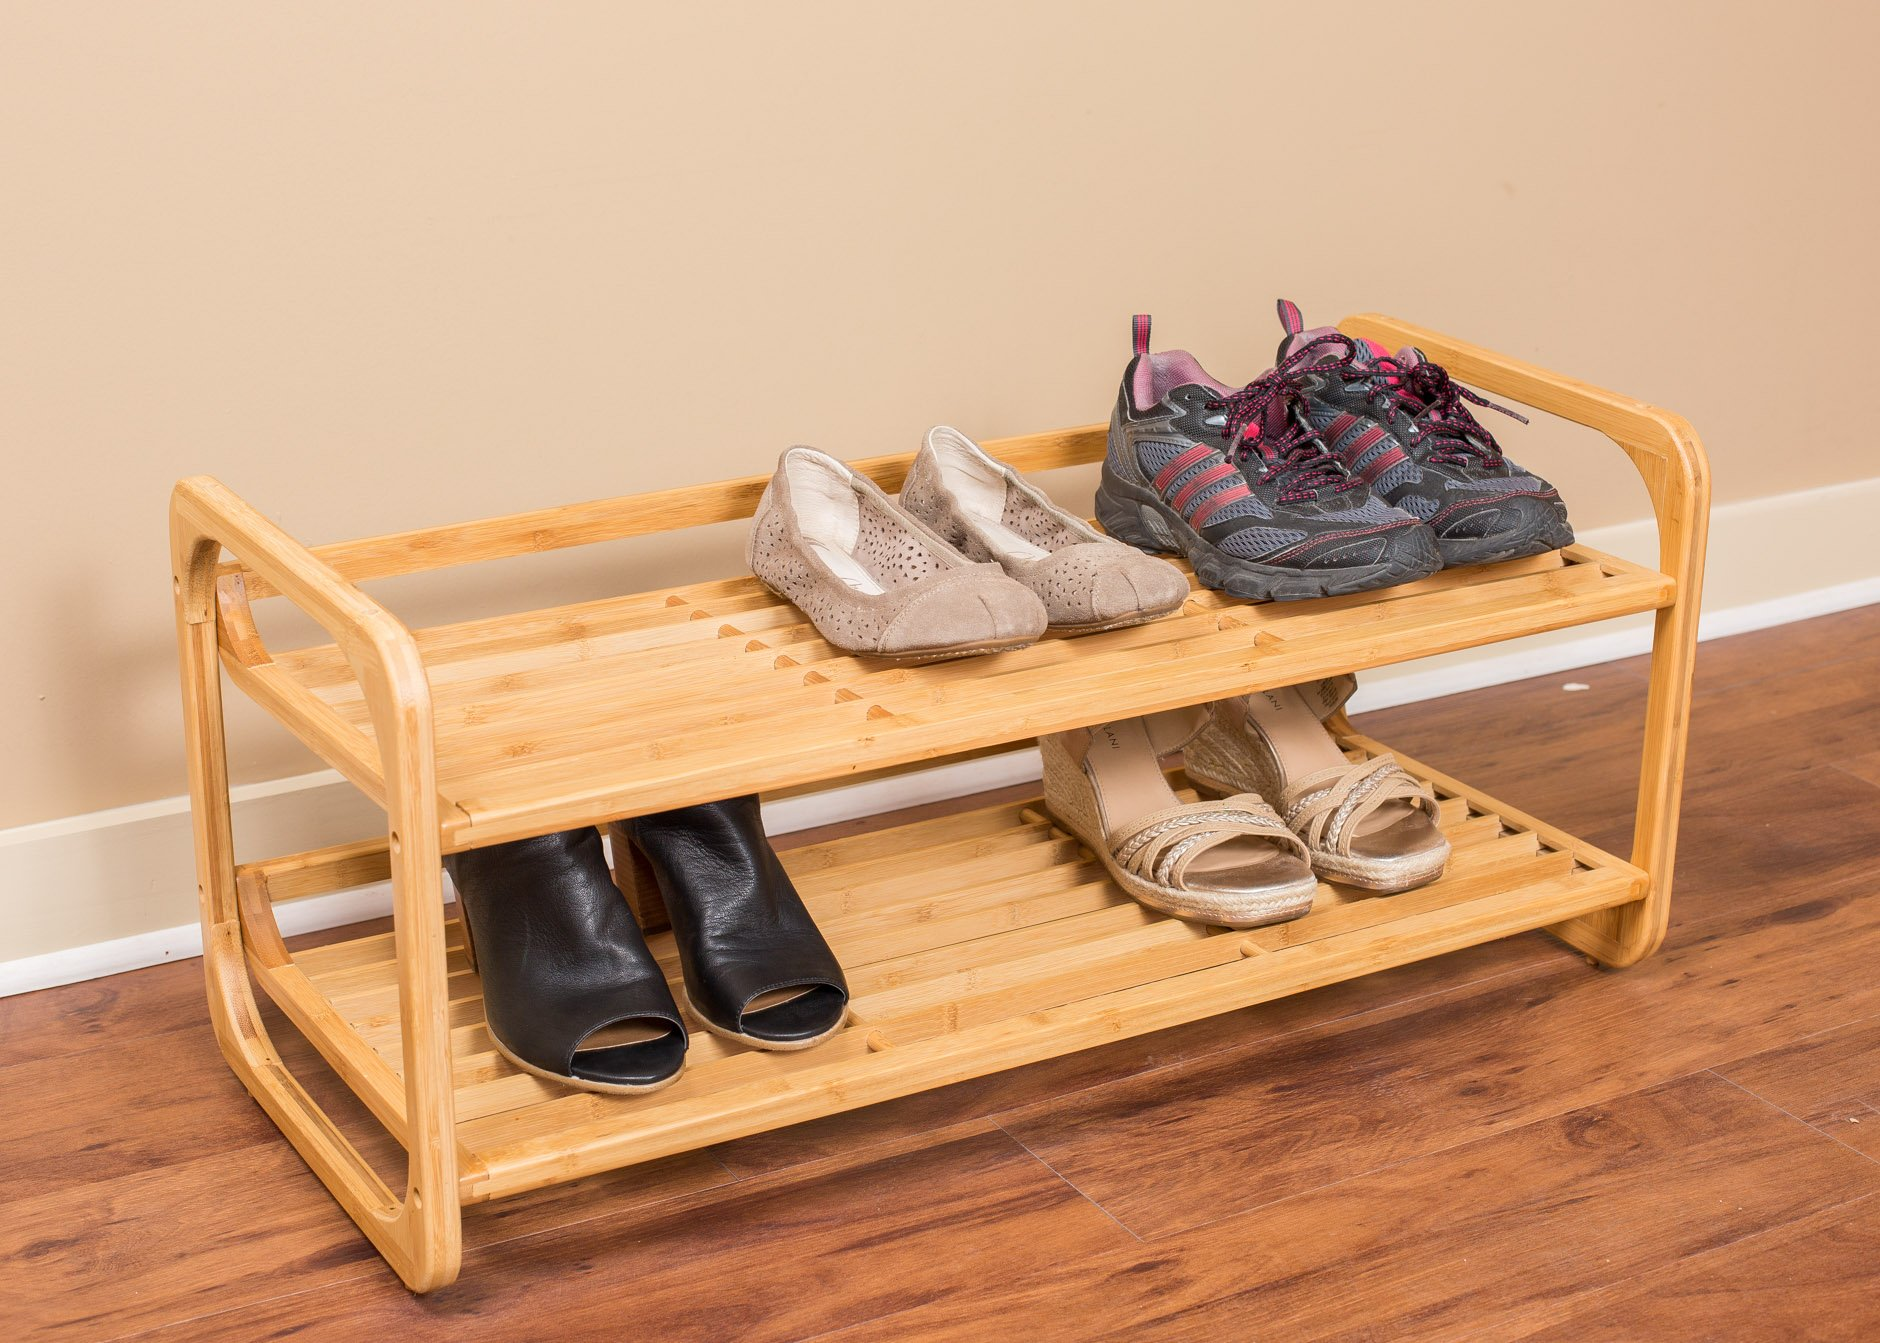 BirdRock Home 2-Tier Bamboo Shoe Rack | Environmentally Friendly | Fits 6-8 Shoes by BirdRock Home (Image #5)